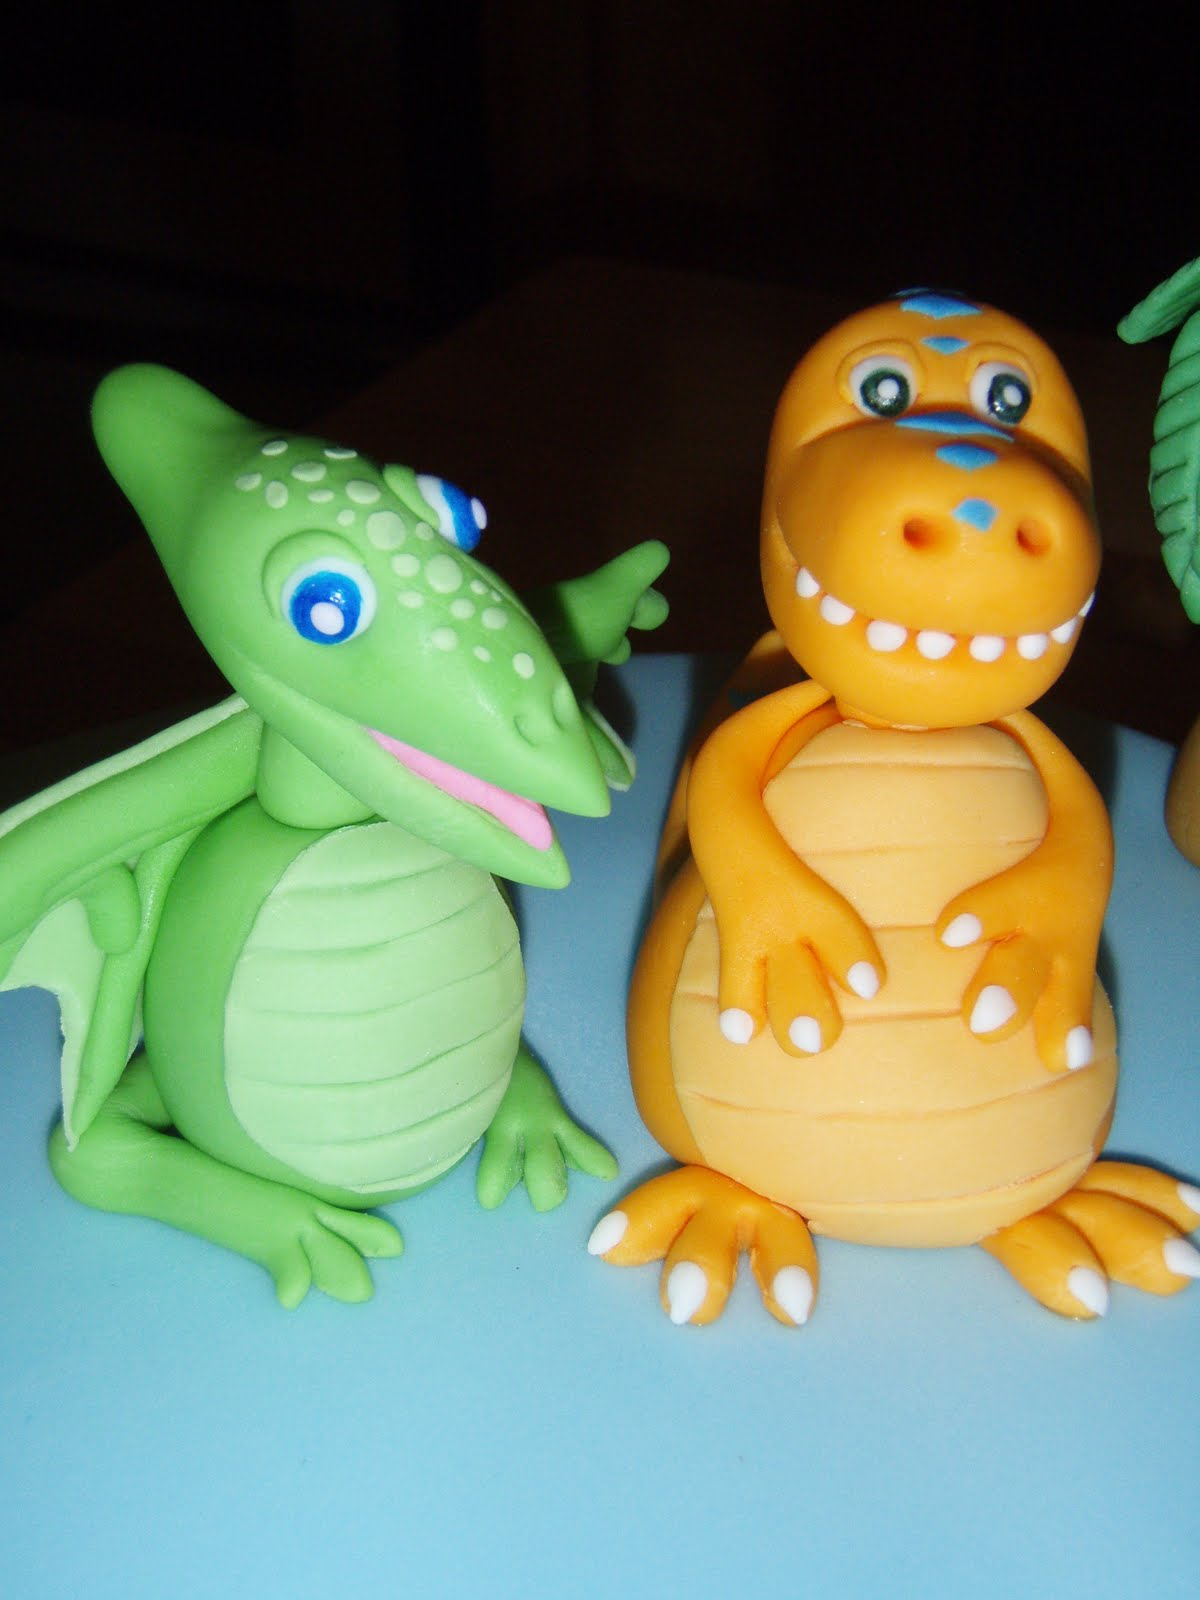 Cake Decorating Fondant Characters : For Batter or For Worse...: 4th Birthday Cake: Dinosaur Train